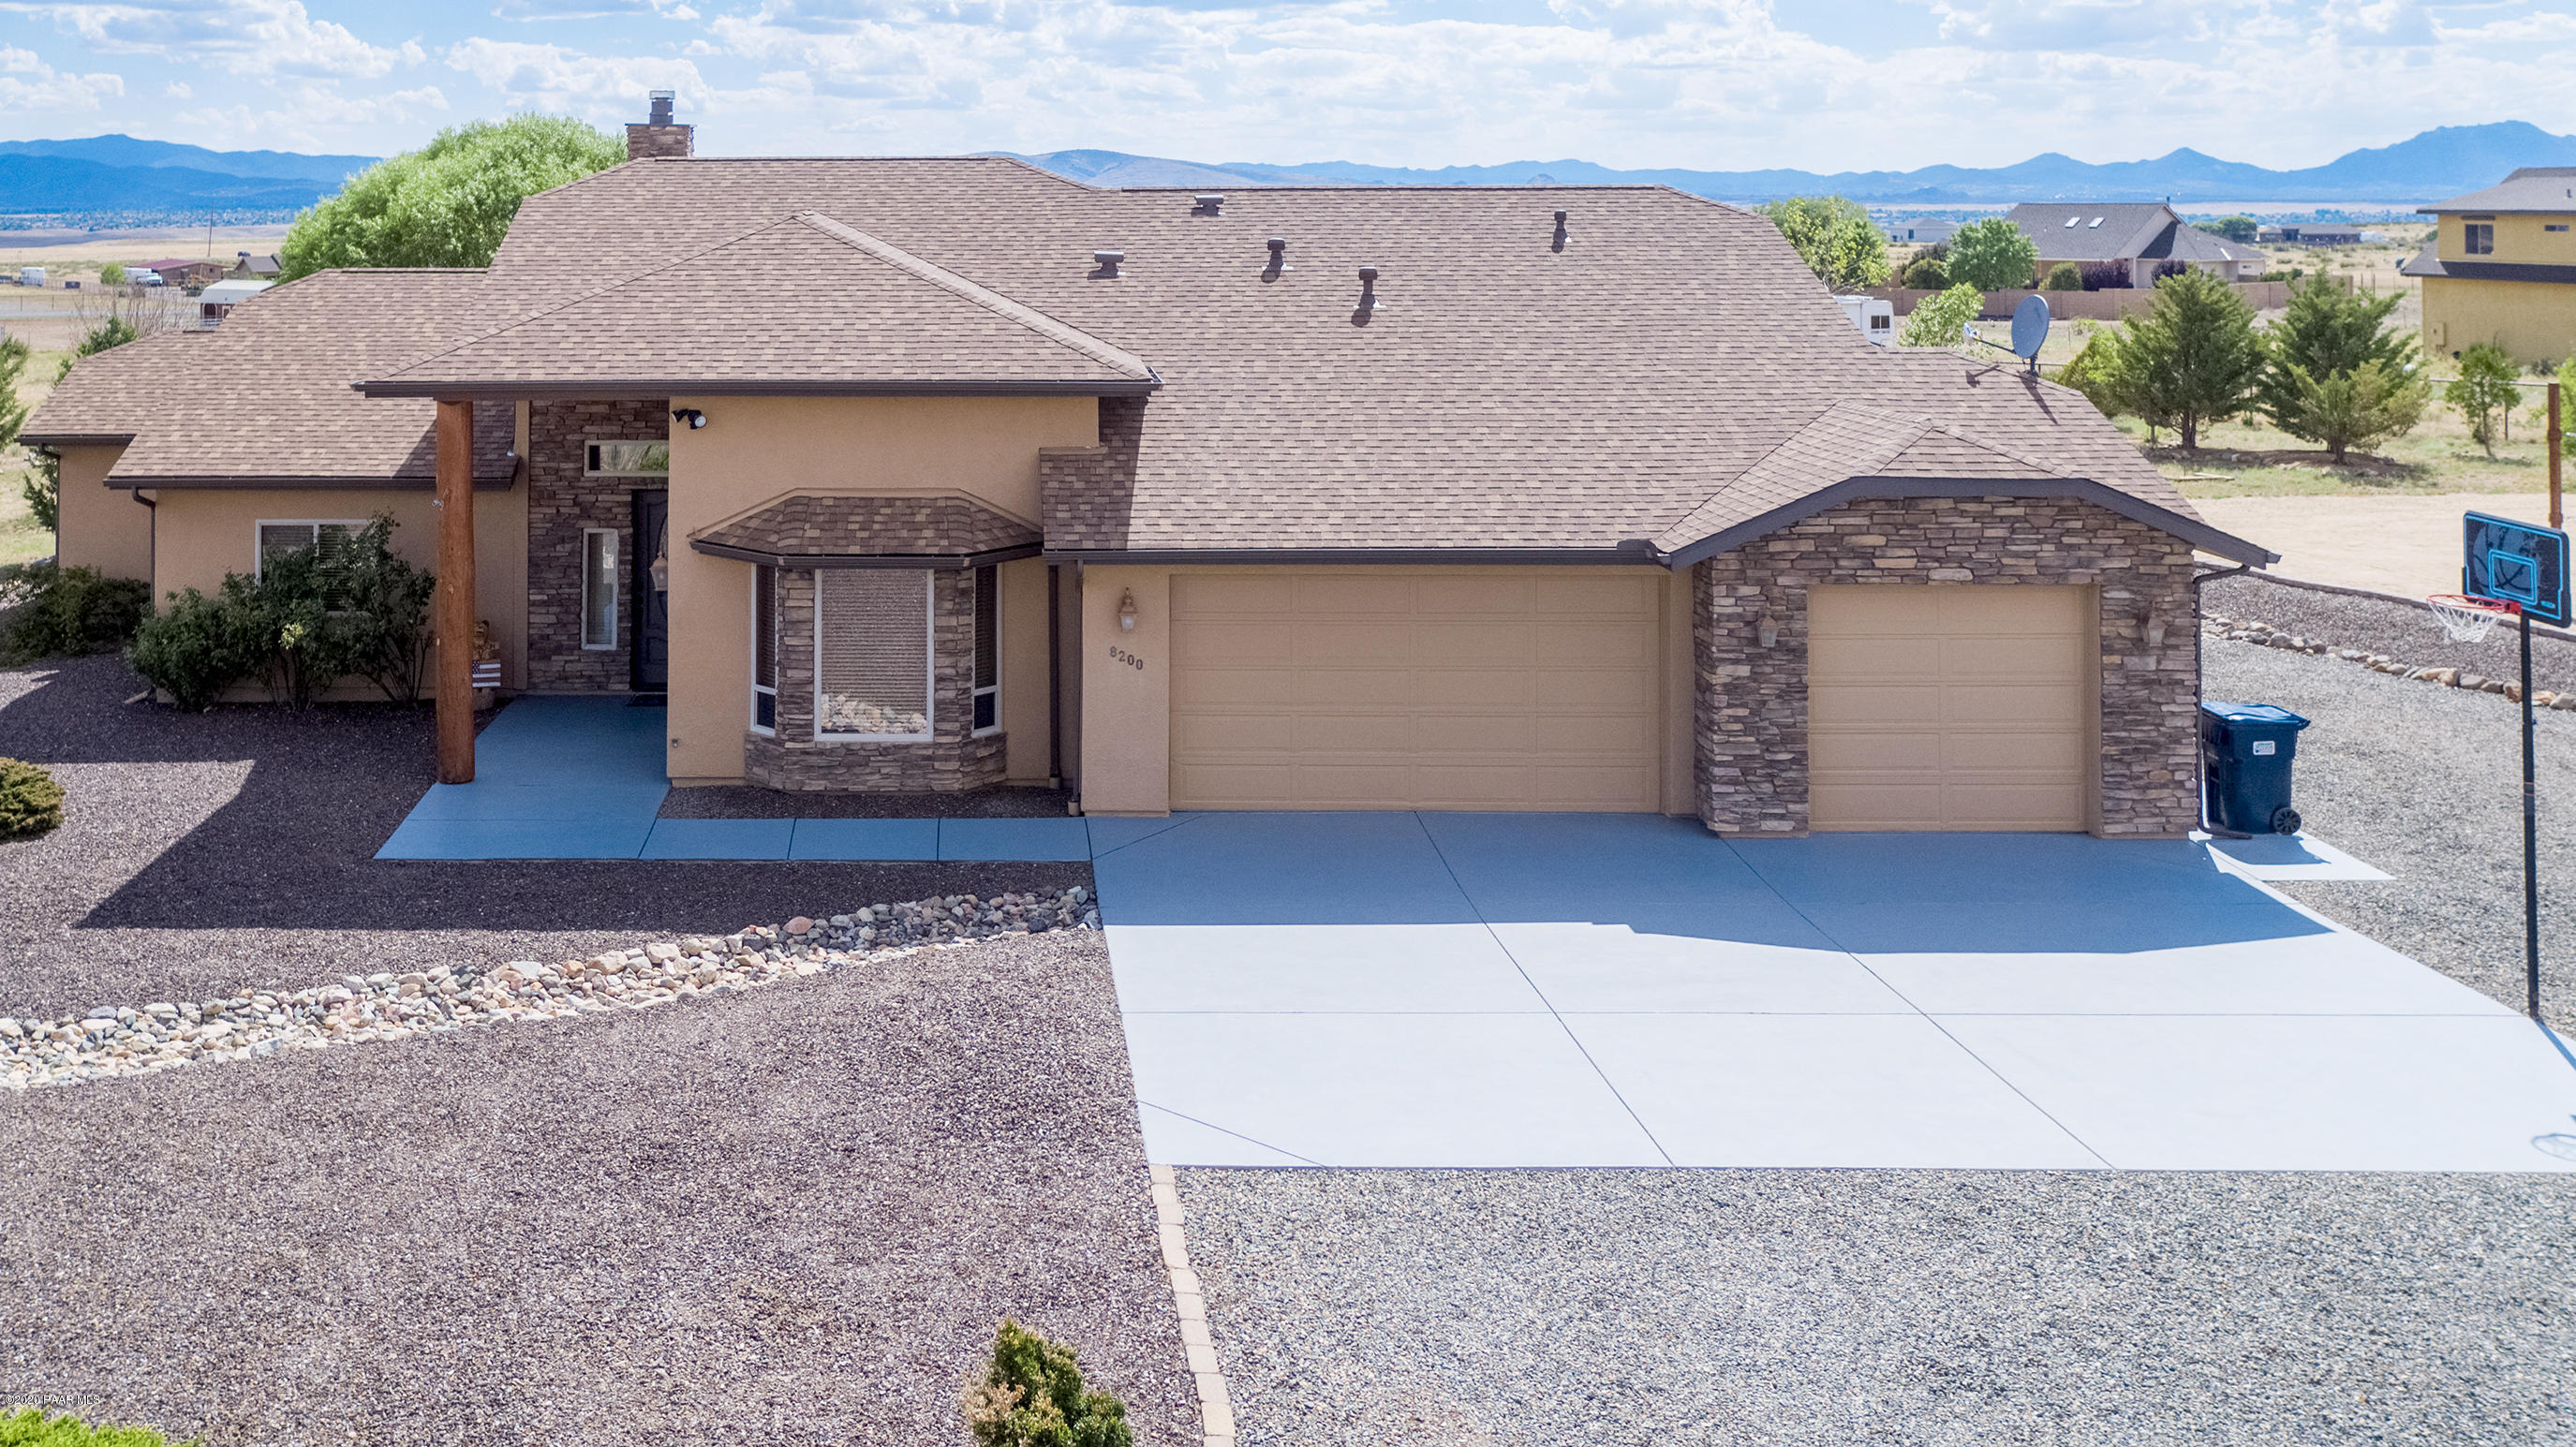 Photo of 8200 Prescott Ridge, Prescott Valley, AZ 86315